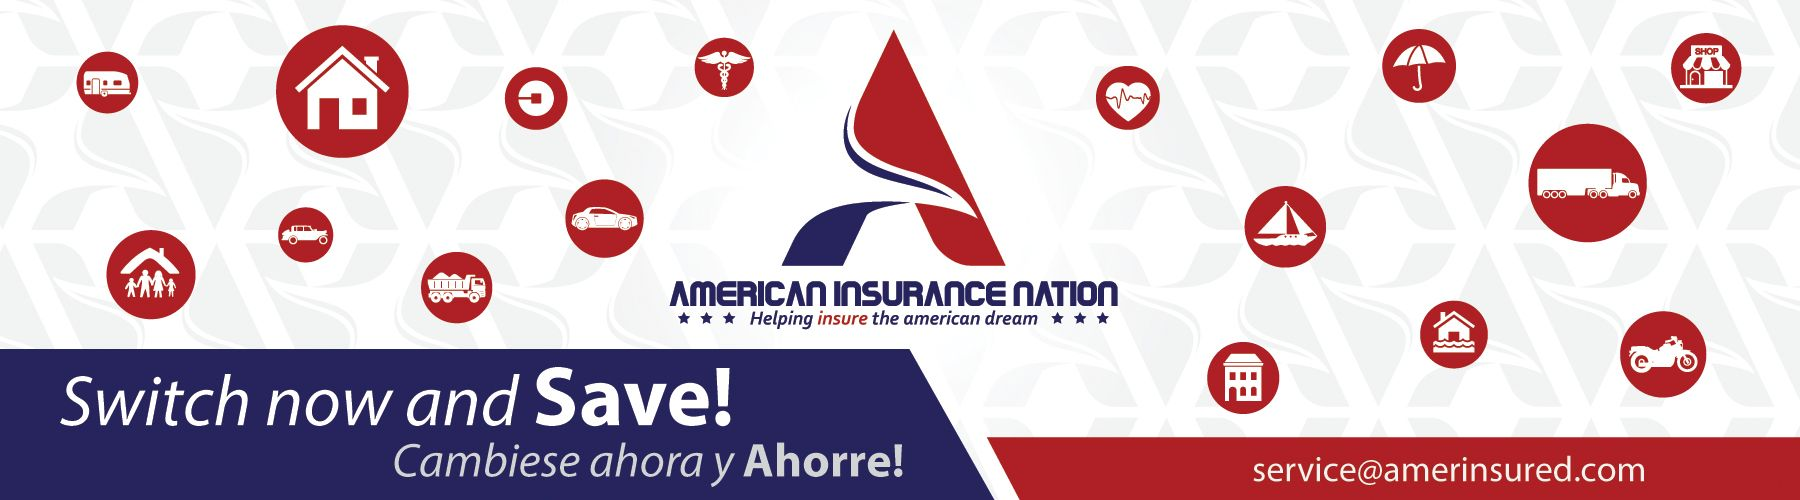 Pin by AMERICAN US INSURANCE on American US Insurance